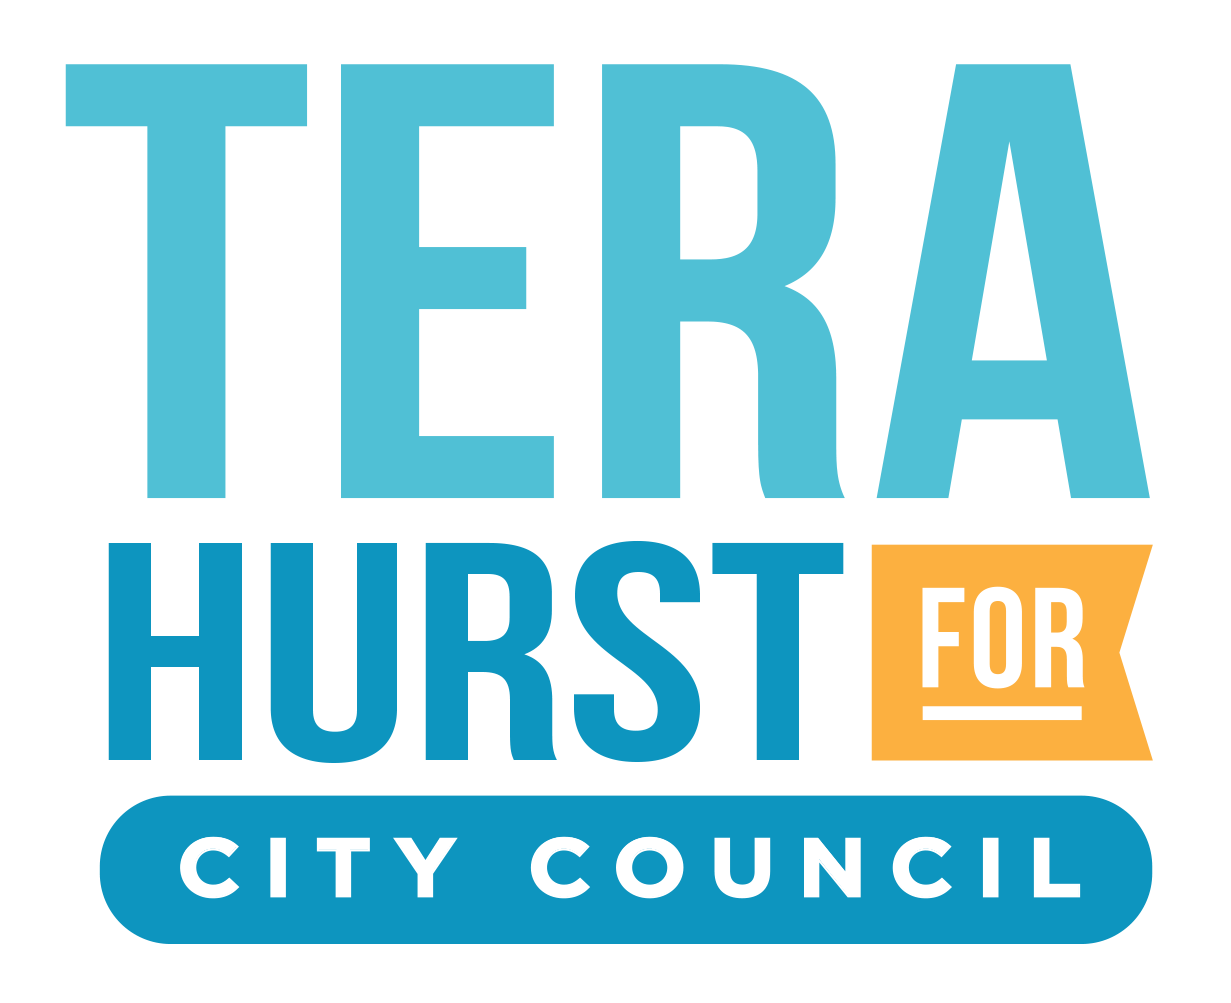 Tera Hurst for Portland City Council